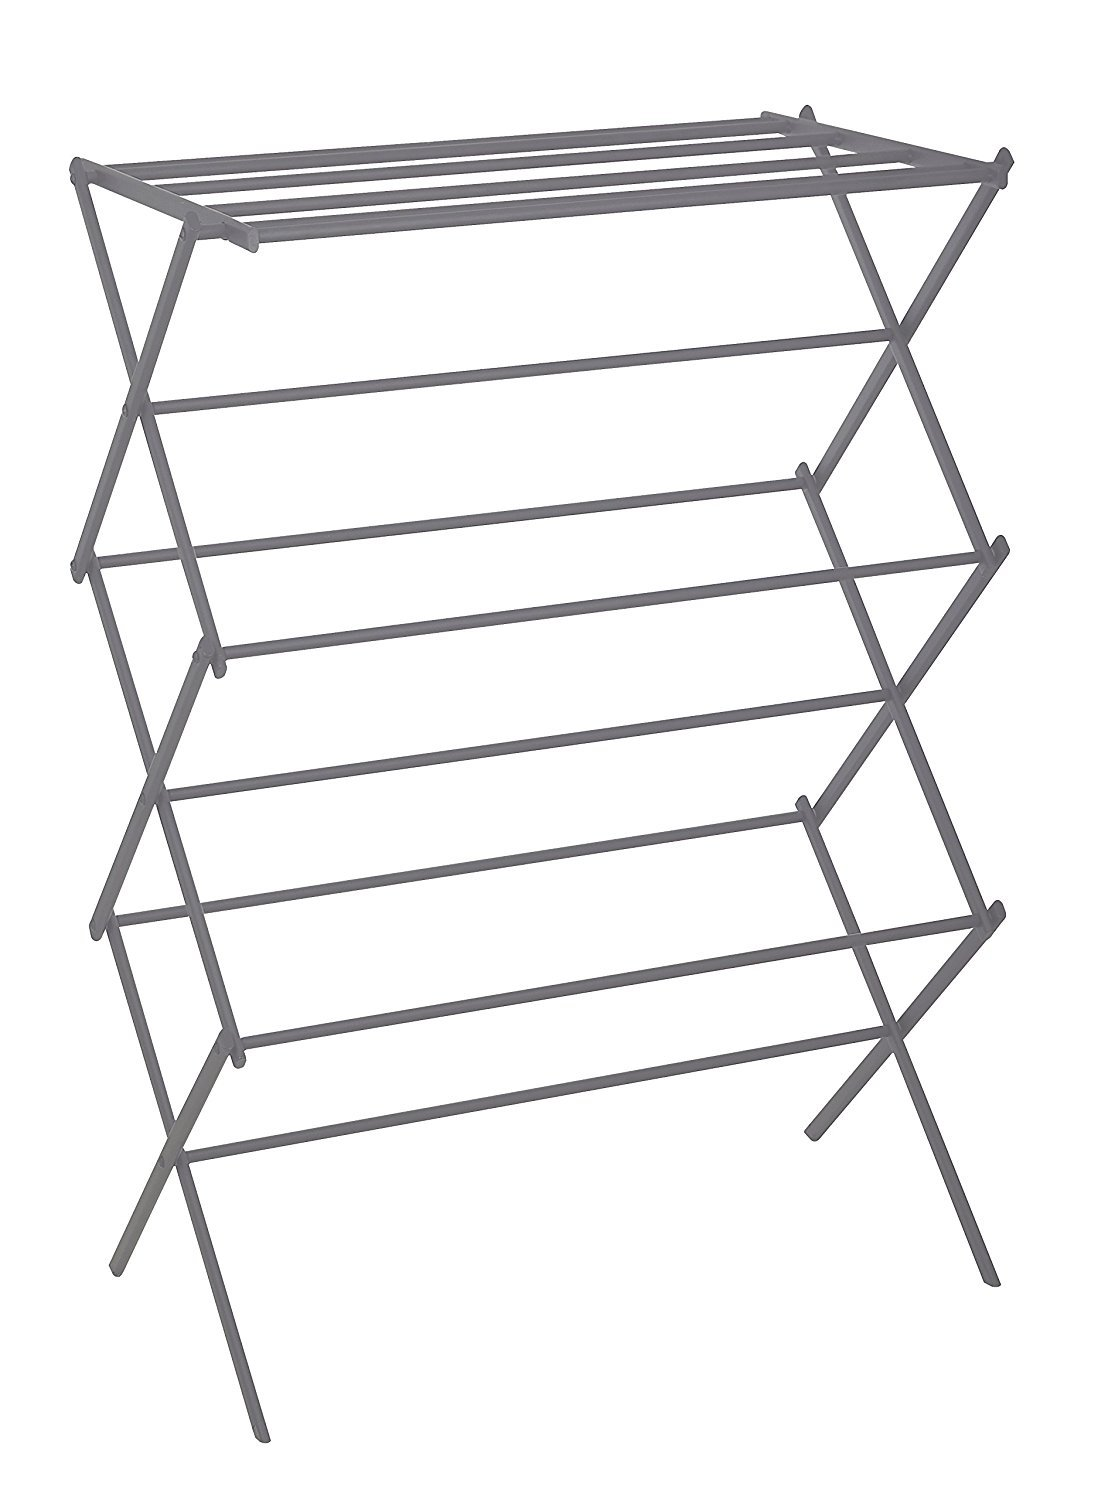 "Uniware Foldable Steel Clothes Drying Rack/Hanger, 41"" H x 28"" W x 16"" D (Grey) - Made of durable steel, easy to move Folds flat for storage Waterproof epoxy coating helps eliminate stains and mildew - laundry-room, entryway-laundry-room, drying-racks - 61tS%2BQXkWgL -"